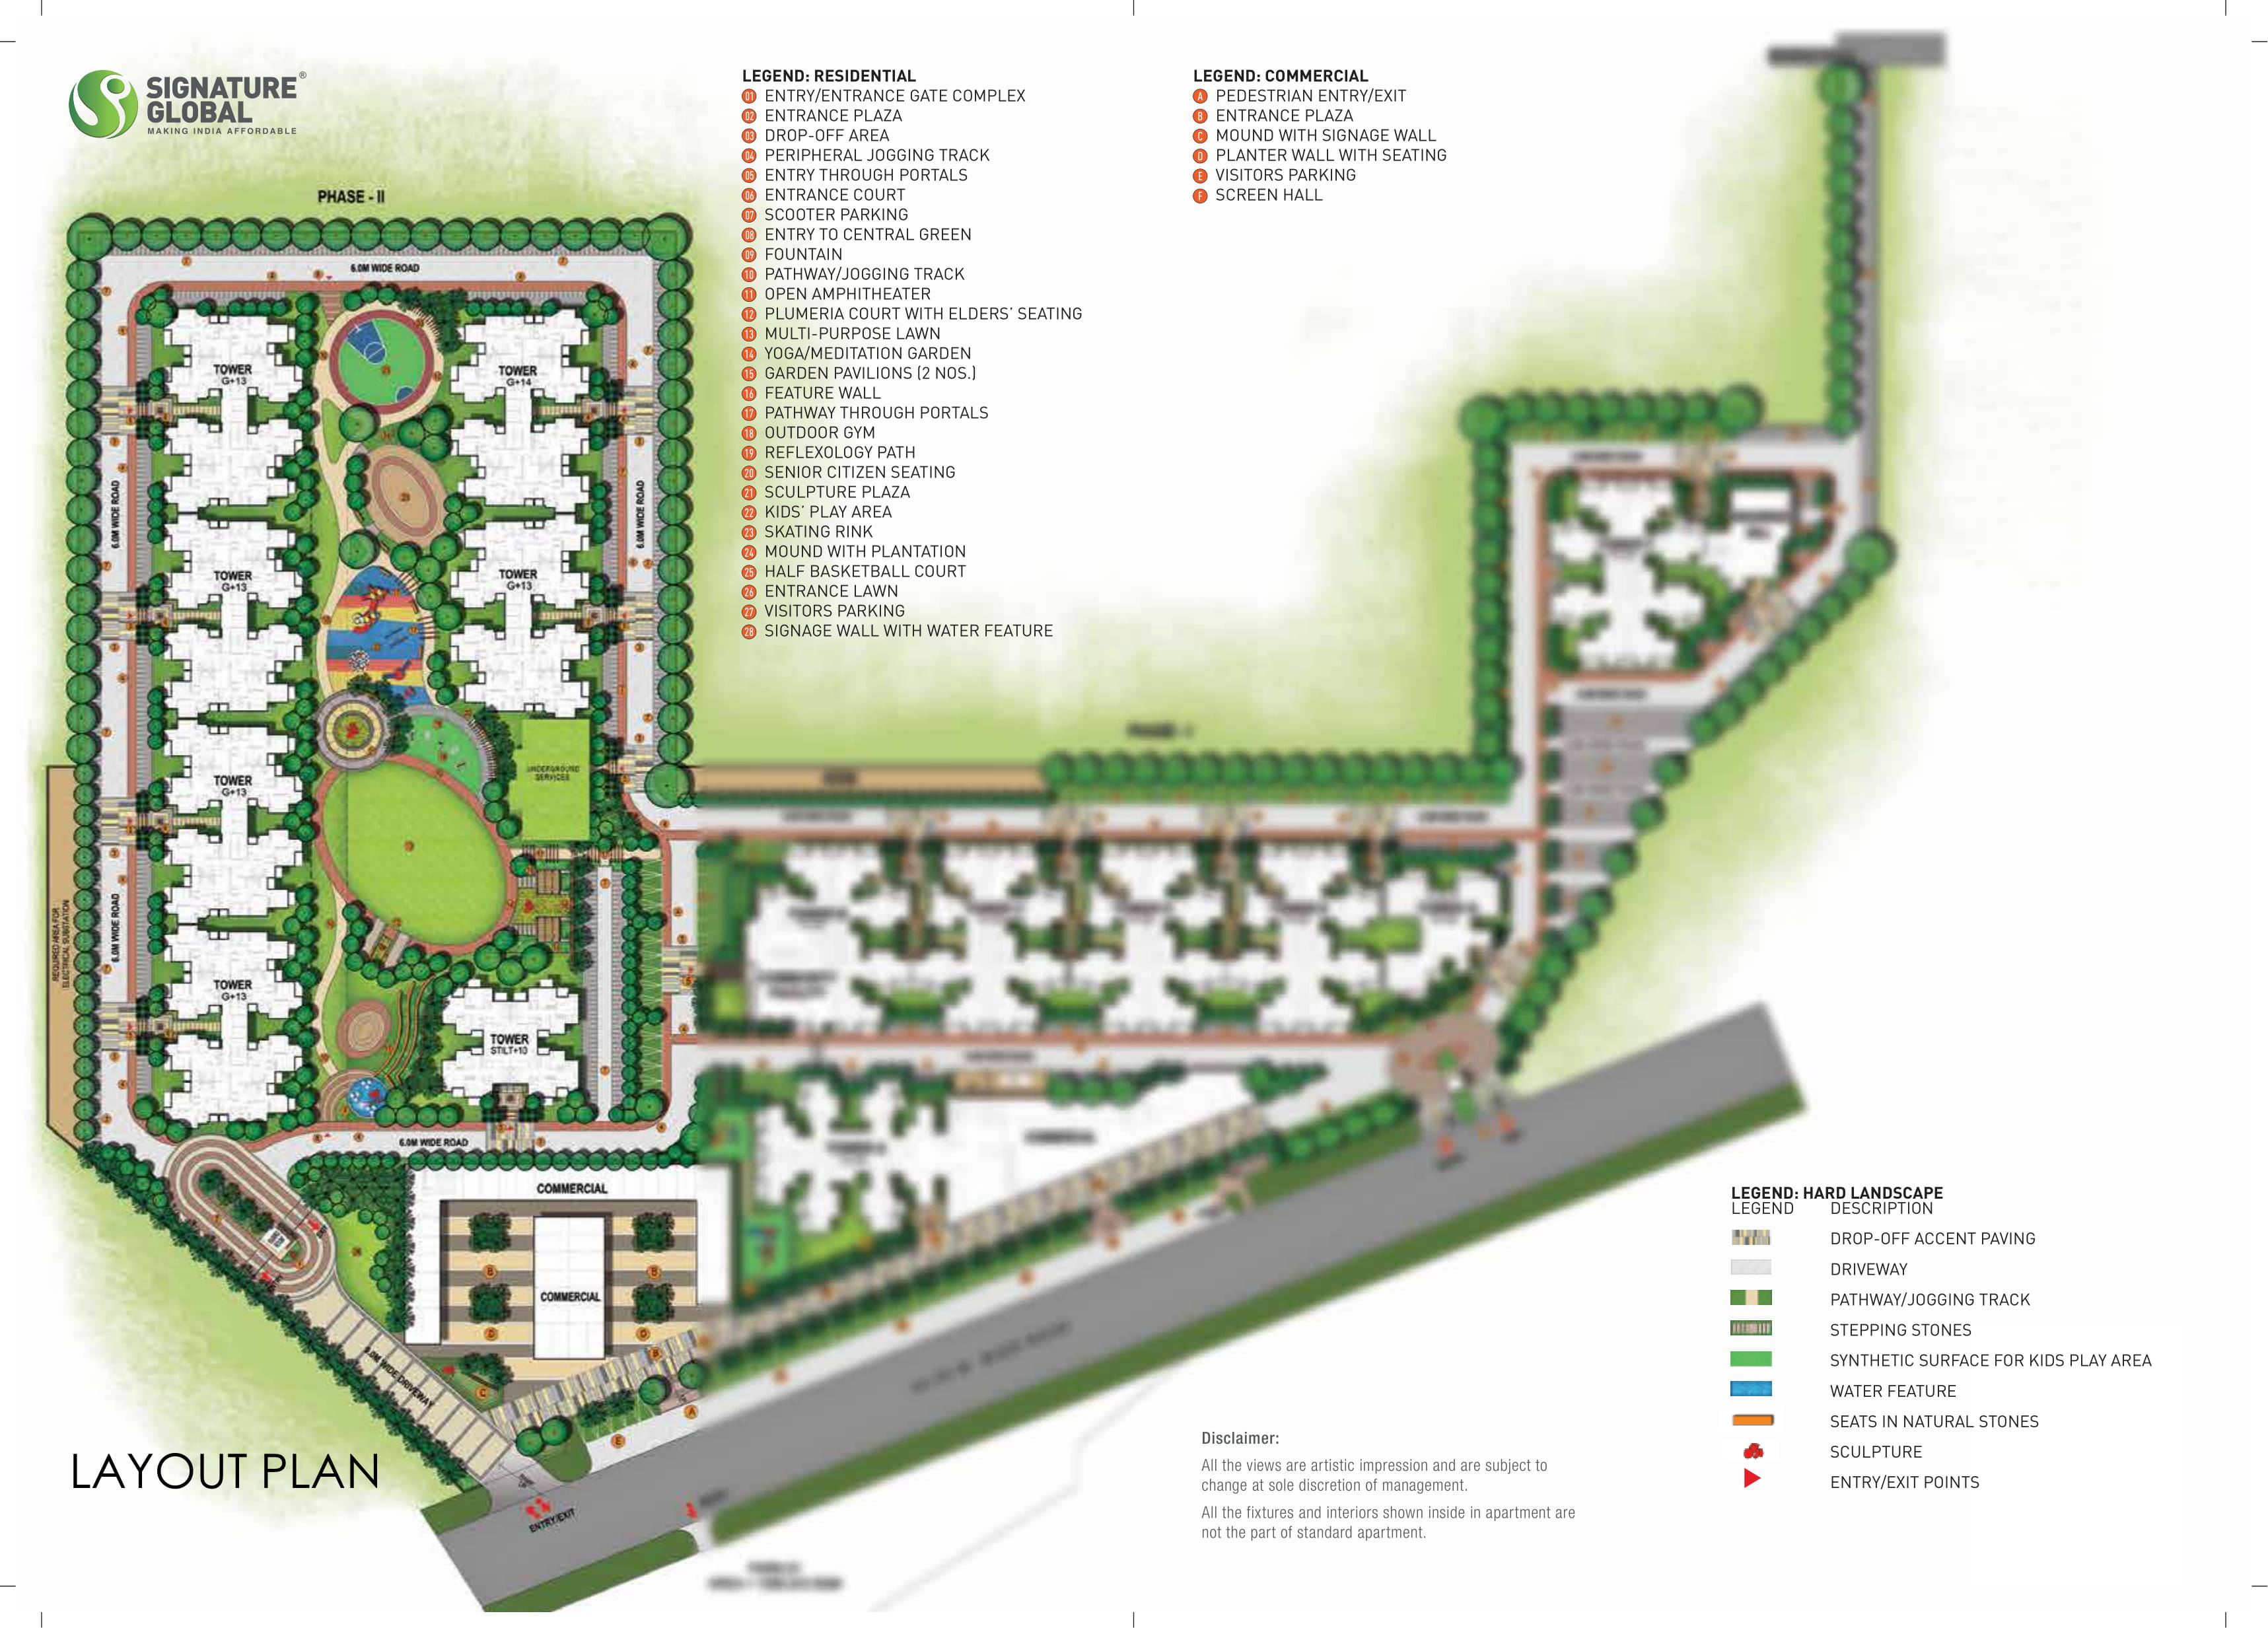 Signature Global Orchard Avenue 2 Site Plan